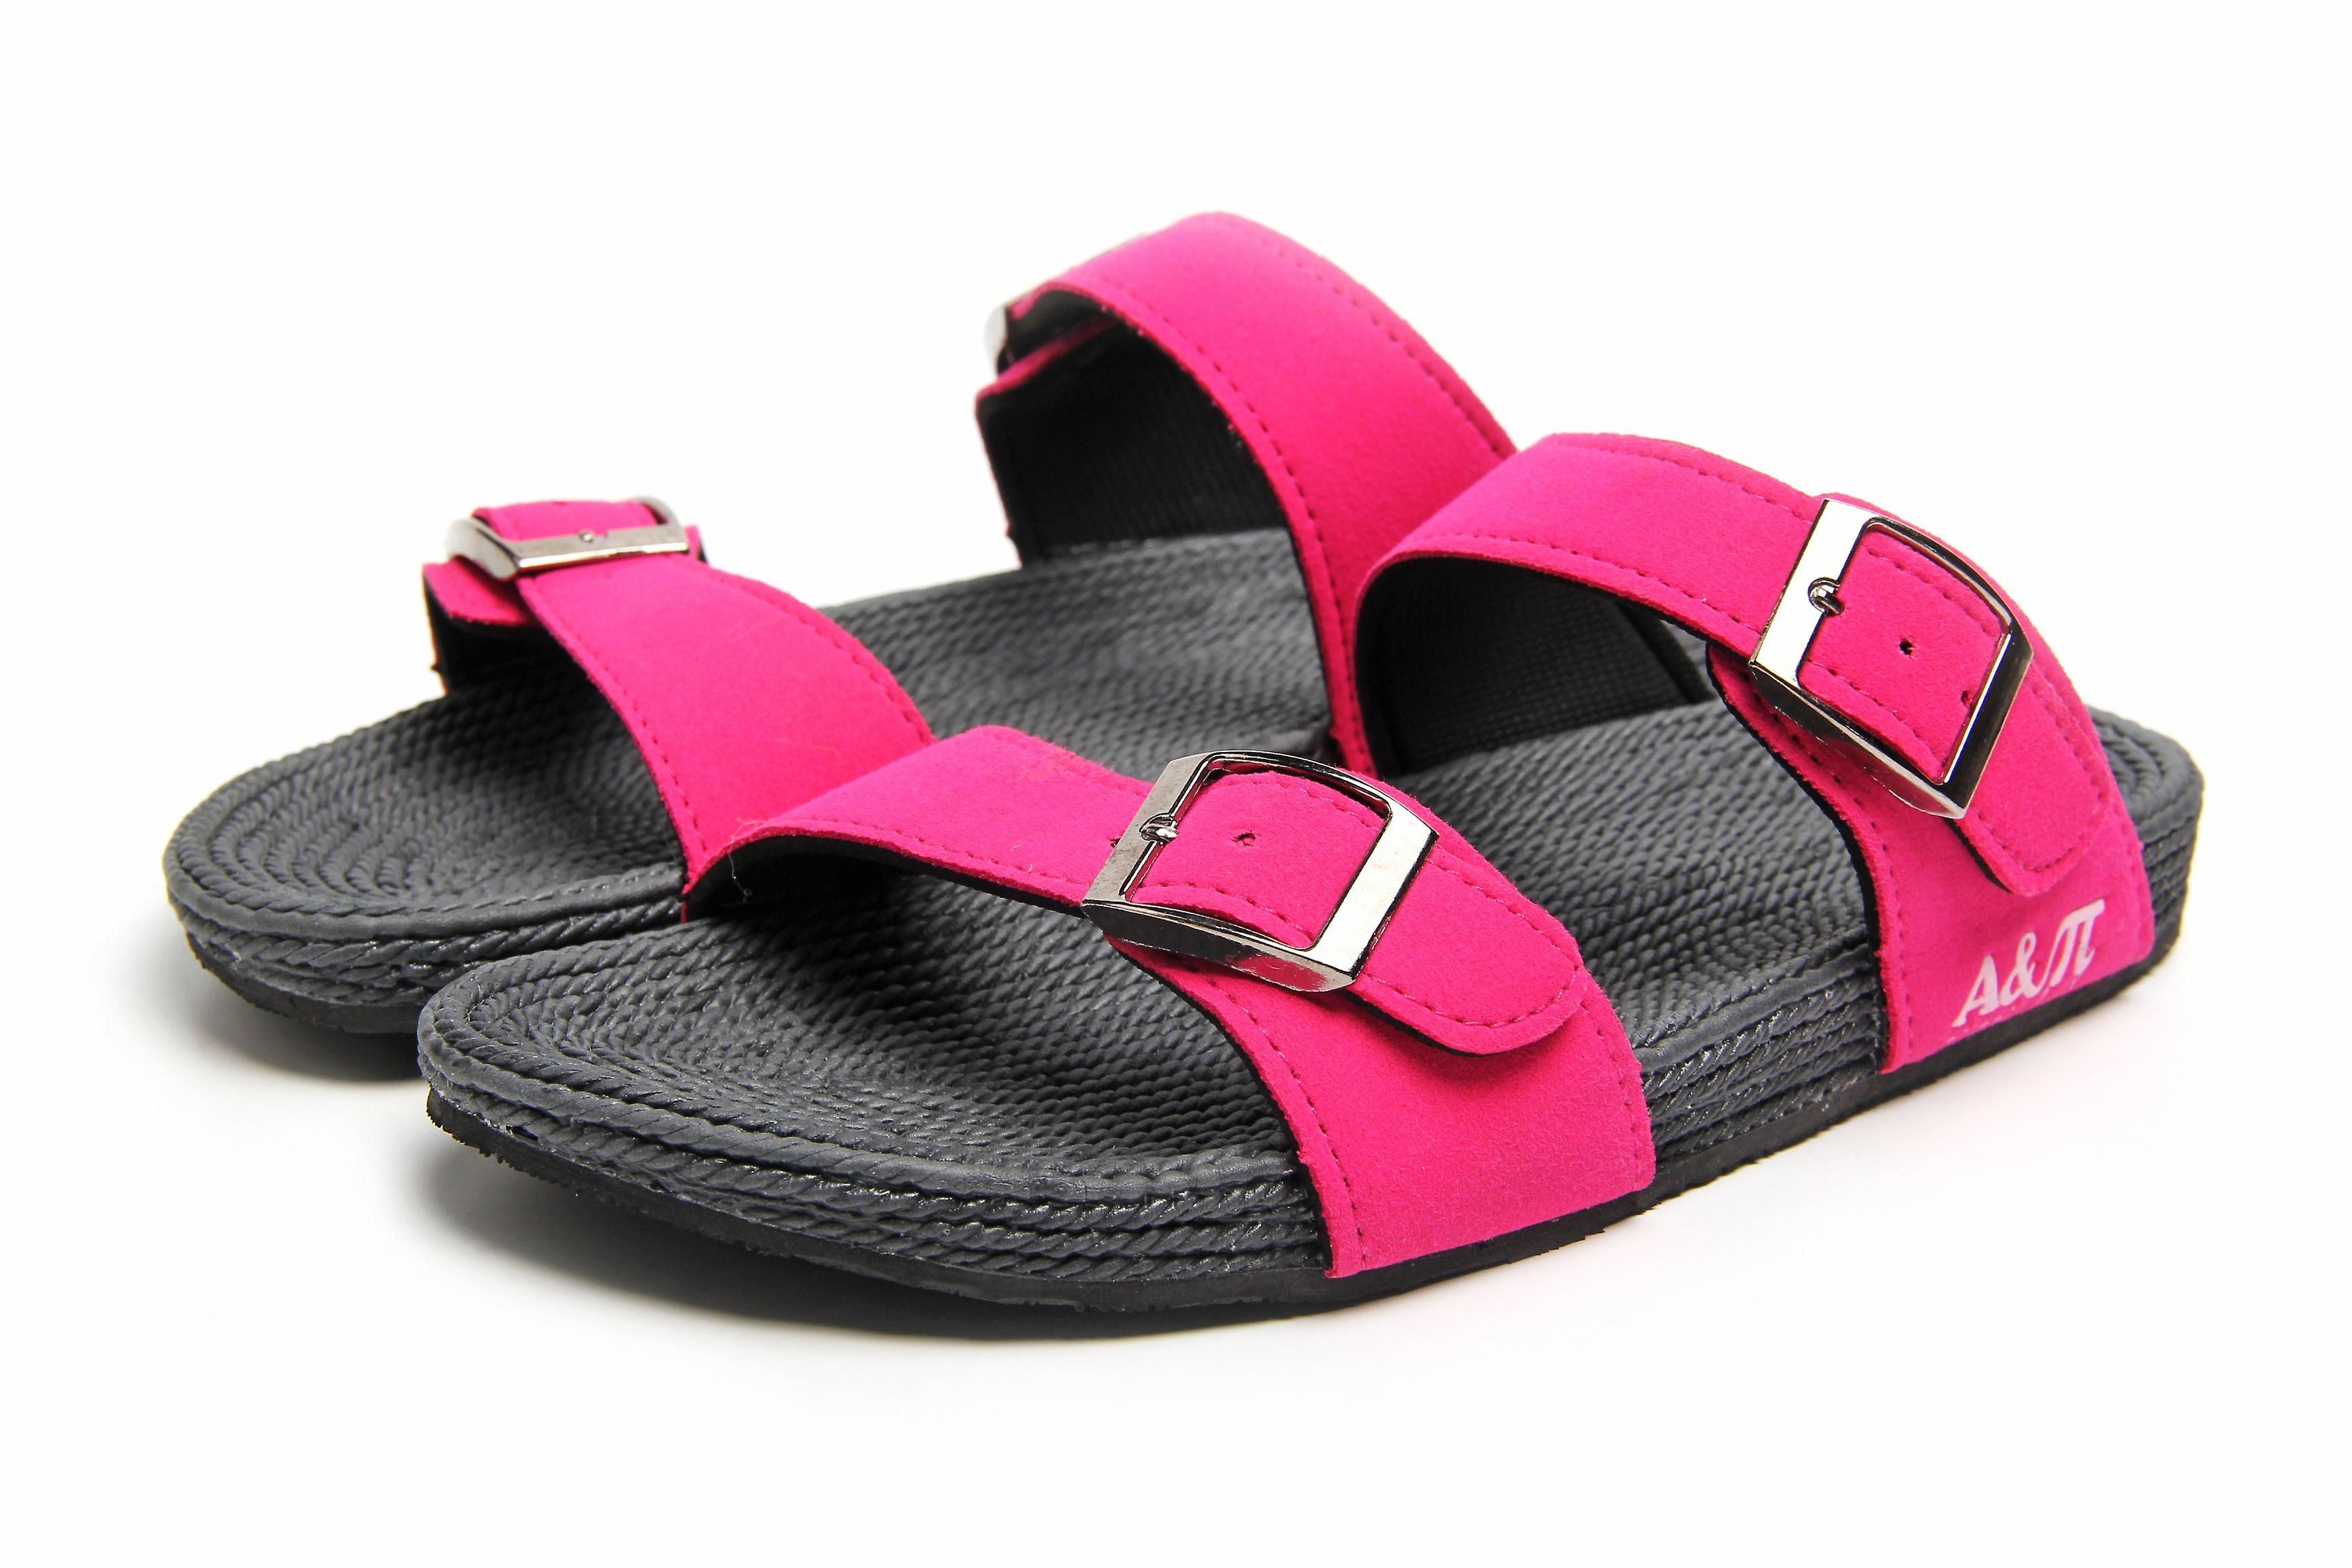 Atlantis Shoes Women Supportive Cushioned Comfortable Sandals Dual Band Fuchsia-grey